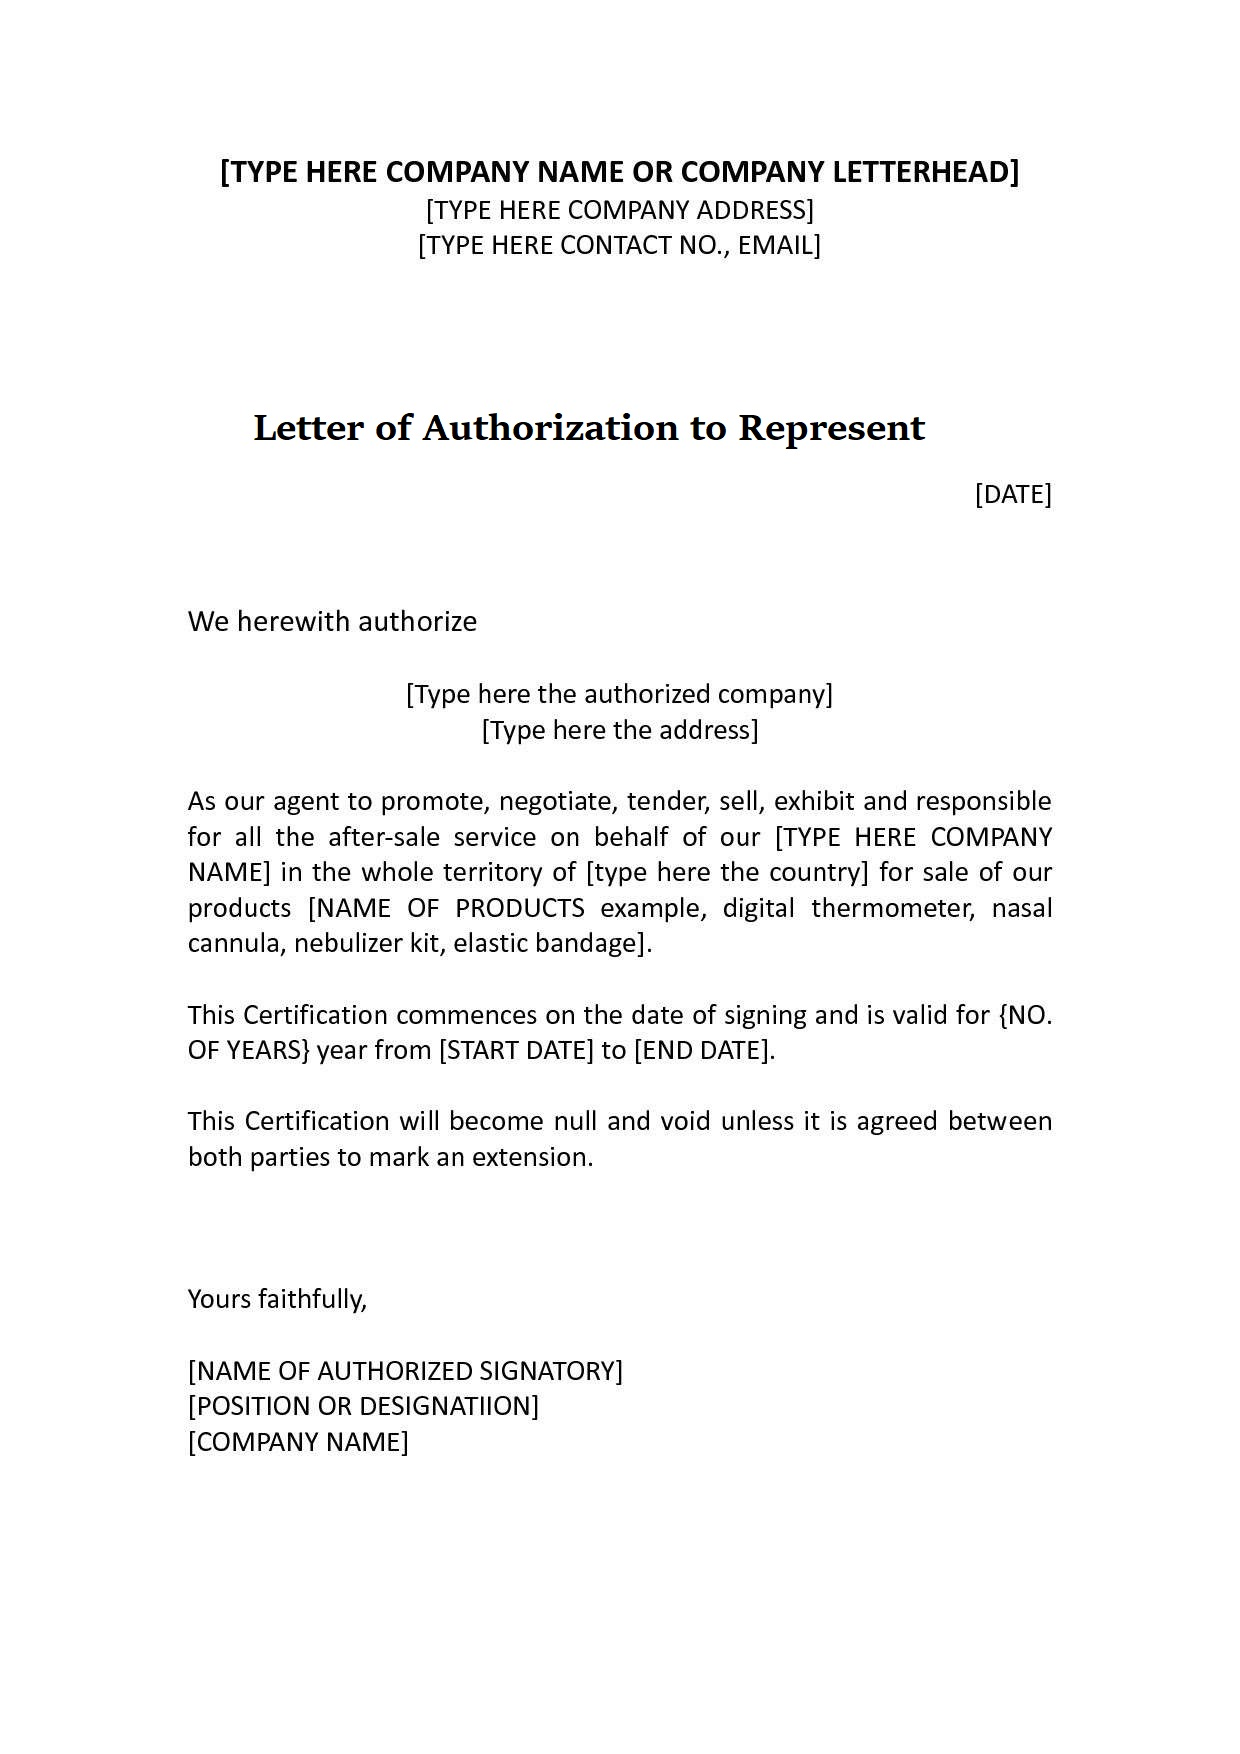 Letter of Authorization to Represent a Person